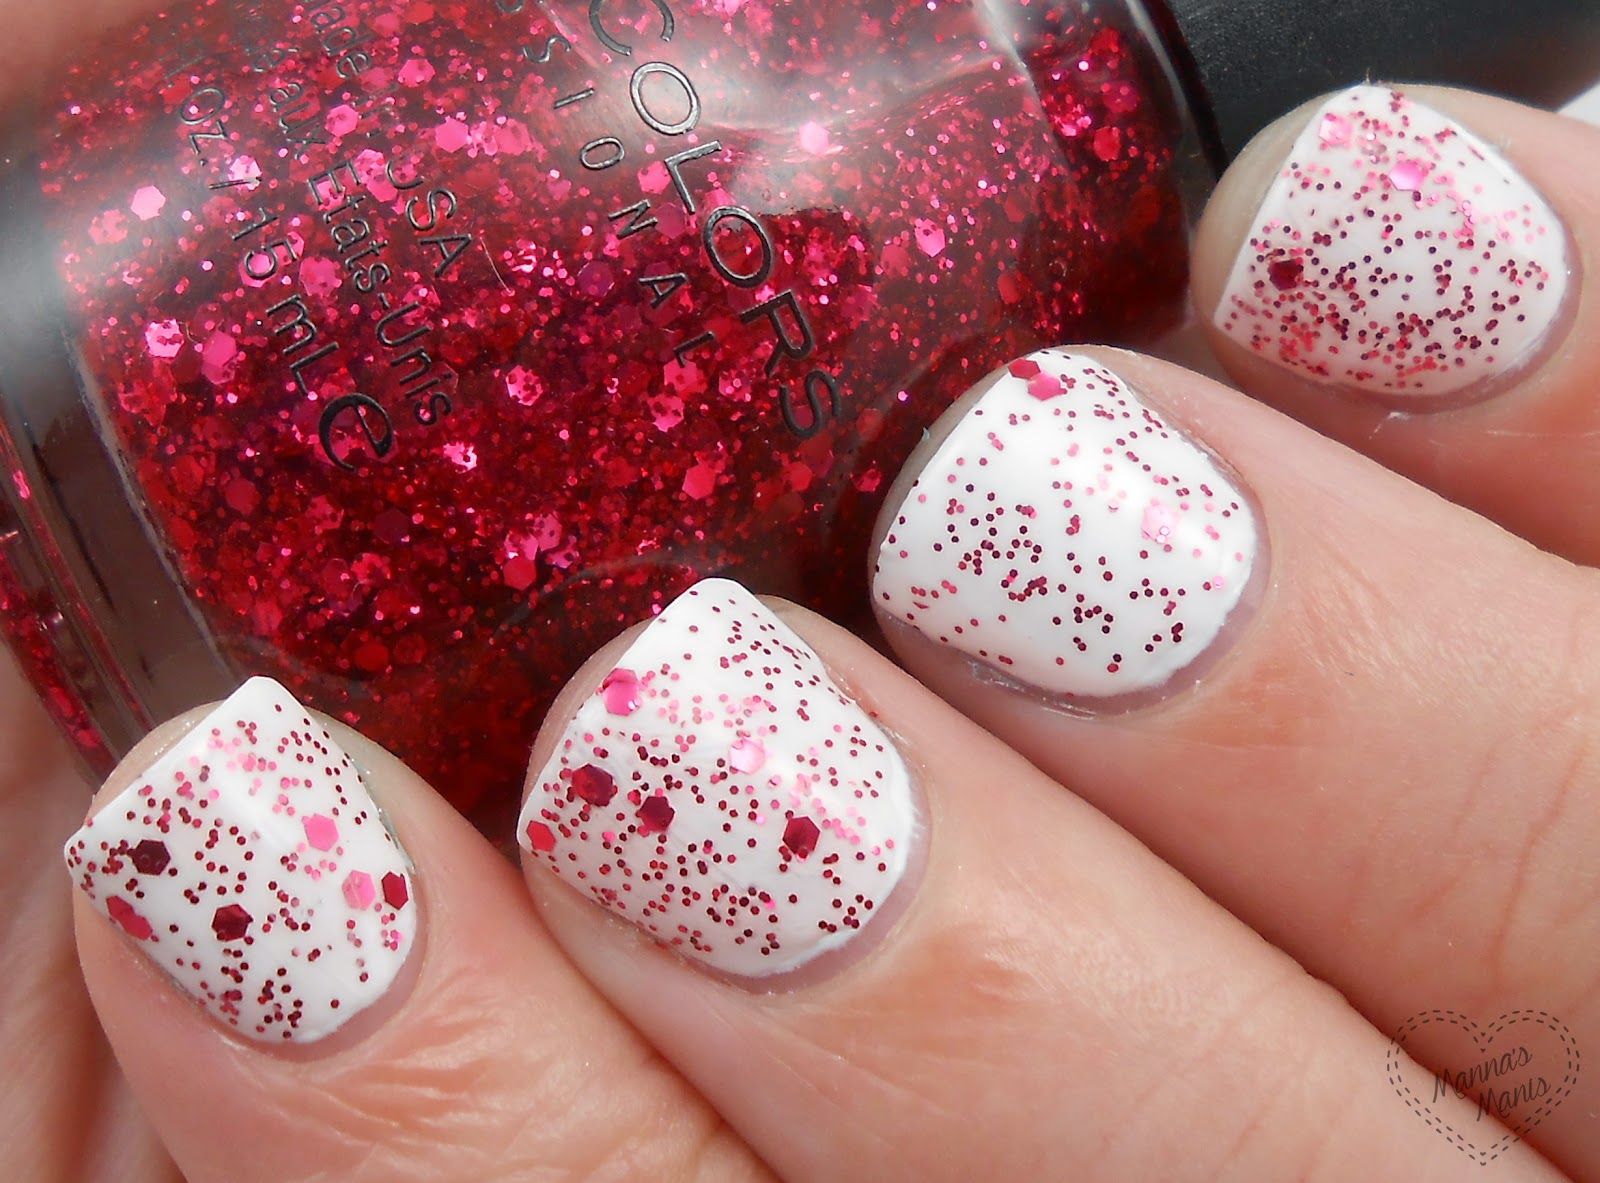 sinful colors decadent, a red glitter nail polish